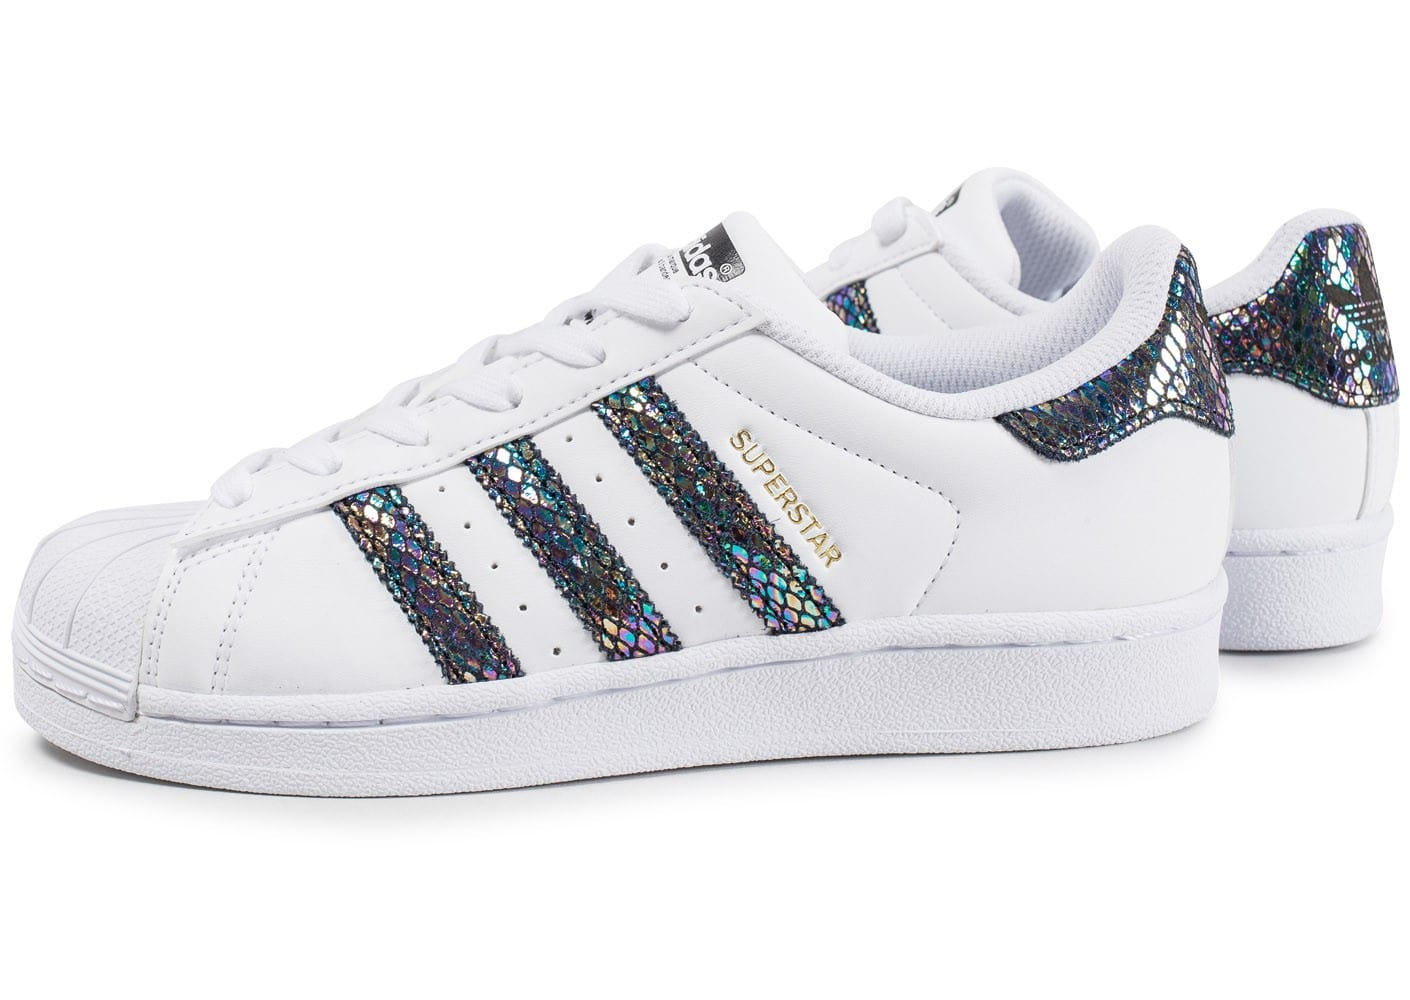 adidas superstar qui brille